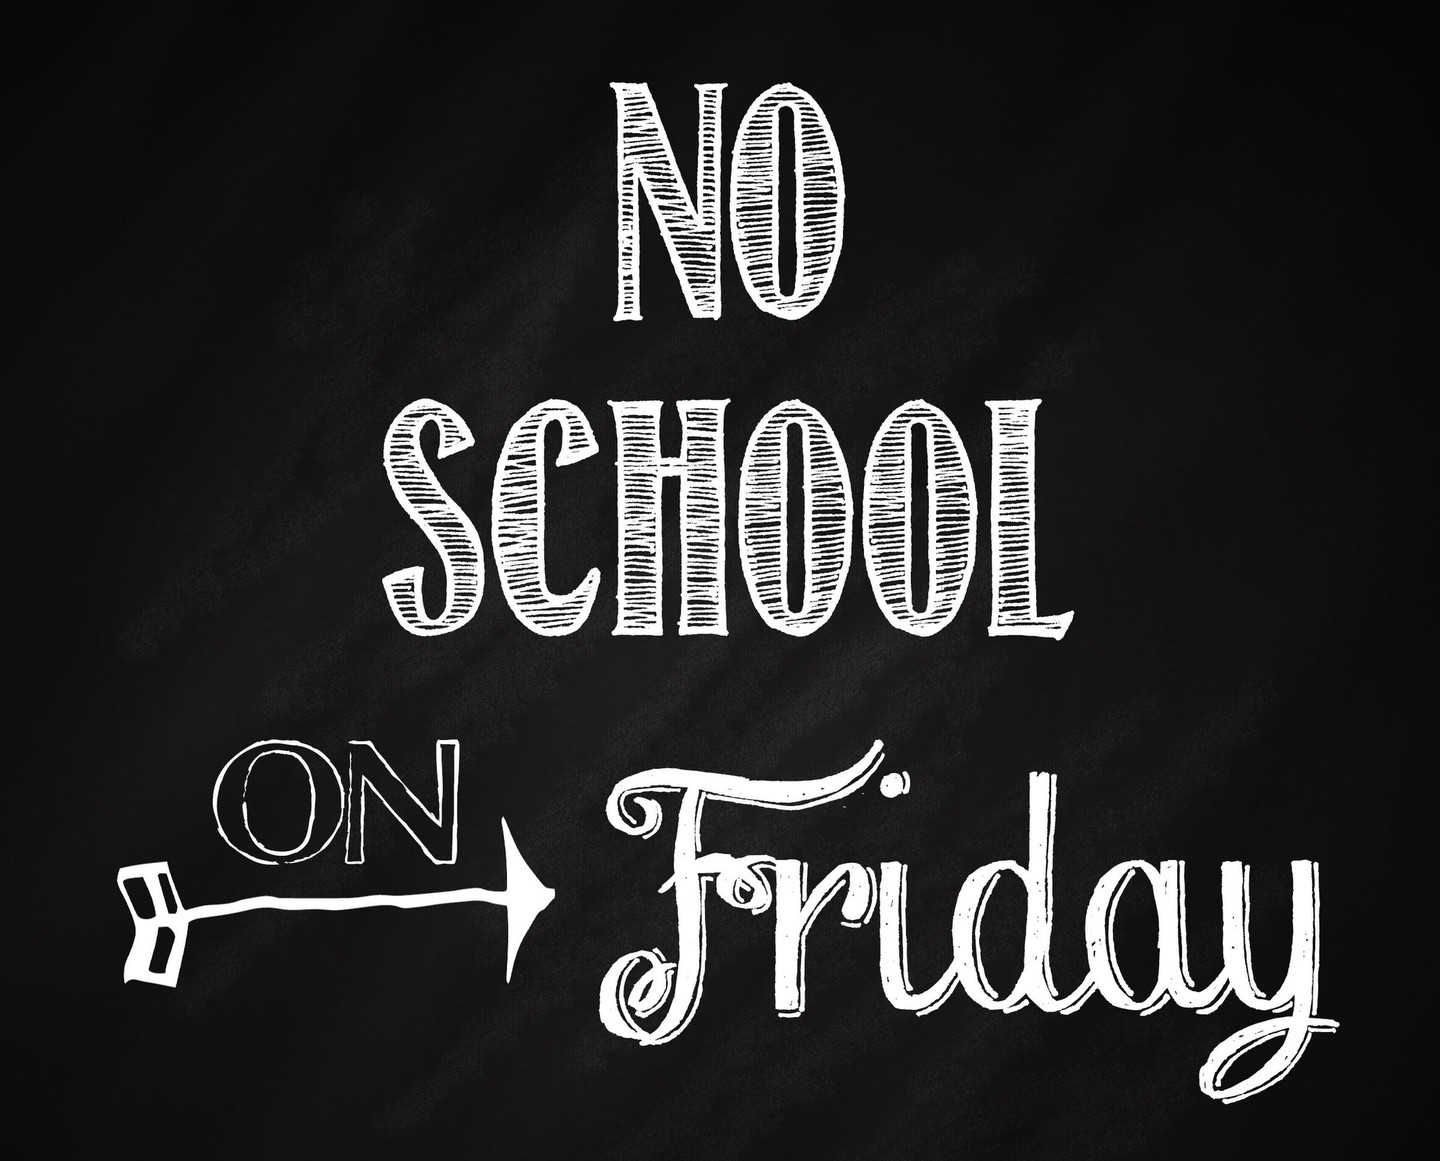 Reminder - No school Friday